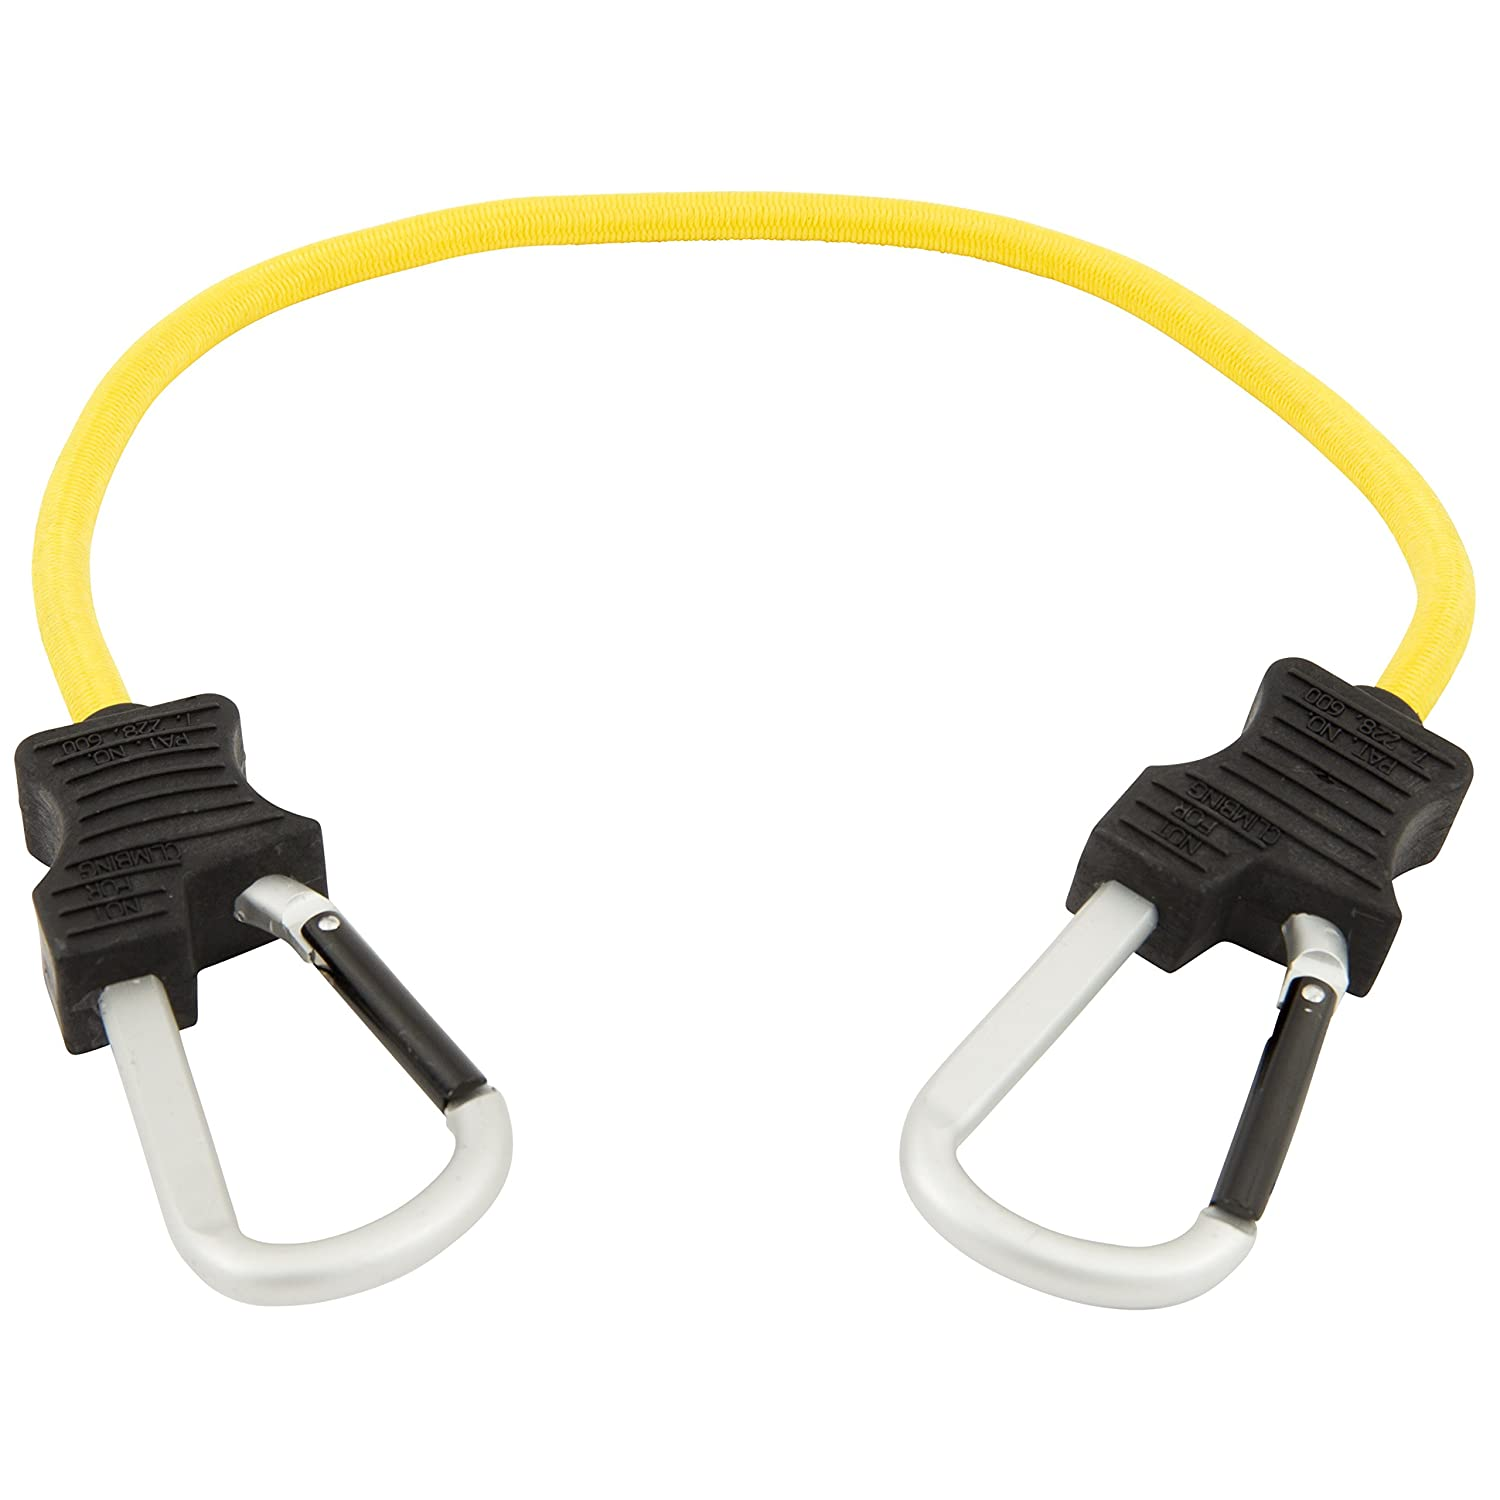 """Keeper 06152 24"""" Super Duty Bungee Cord with Carabiner Hook (Yellow)"""